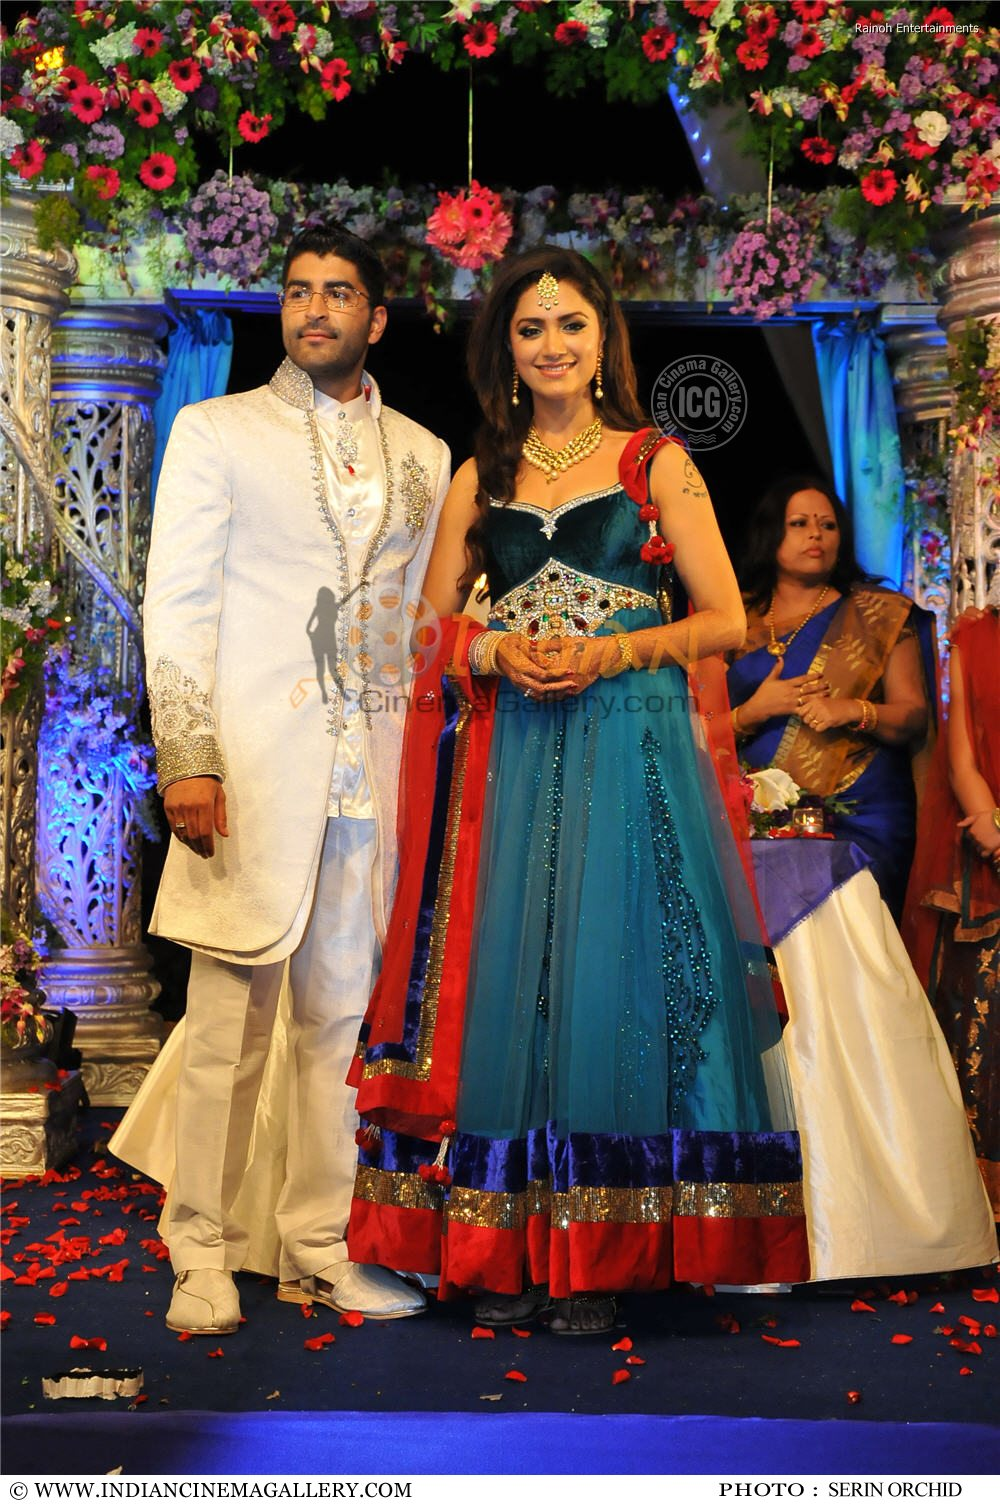 All Film Updates Online Actress Hot Gallery Movie Wallpapers Mamta Mohandas Wedding Reception